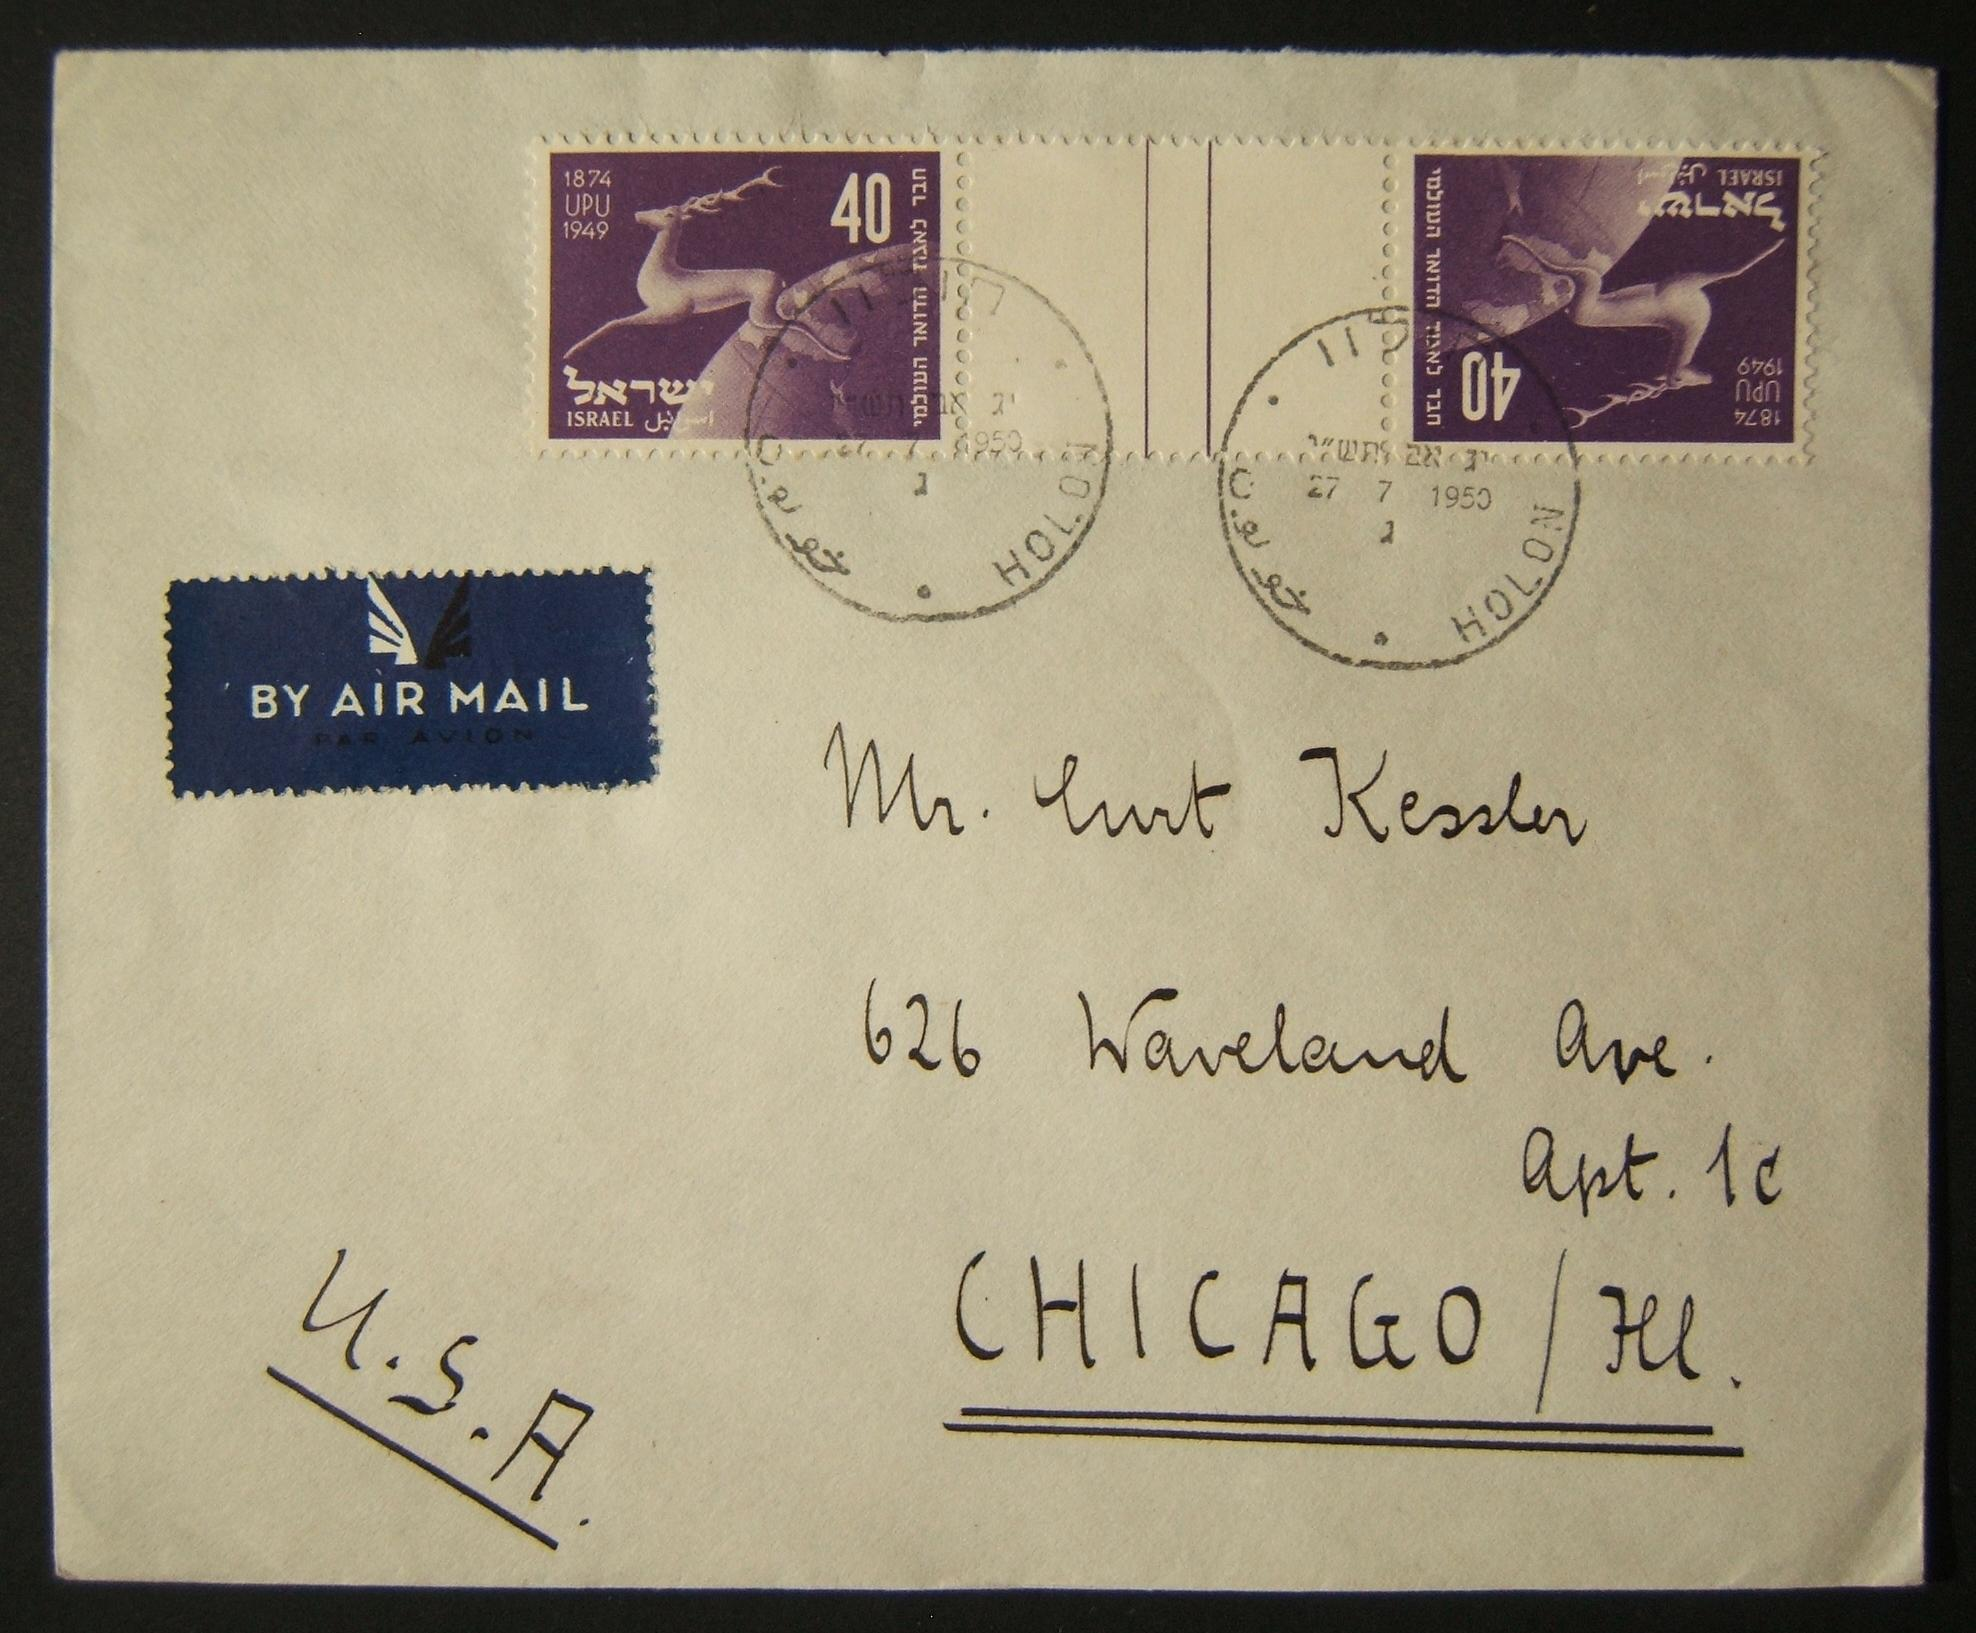 7/1950 airmail from HOLON to CHICAGO using 40Pr UPU tete-beche gutter pair stamps